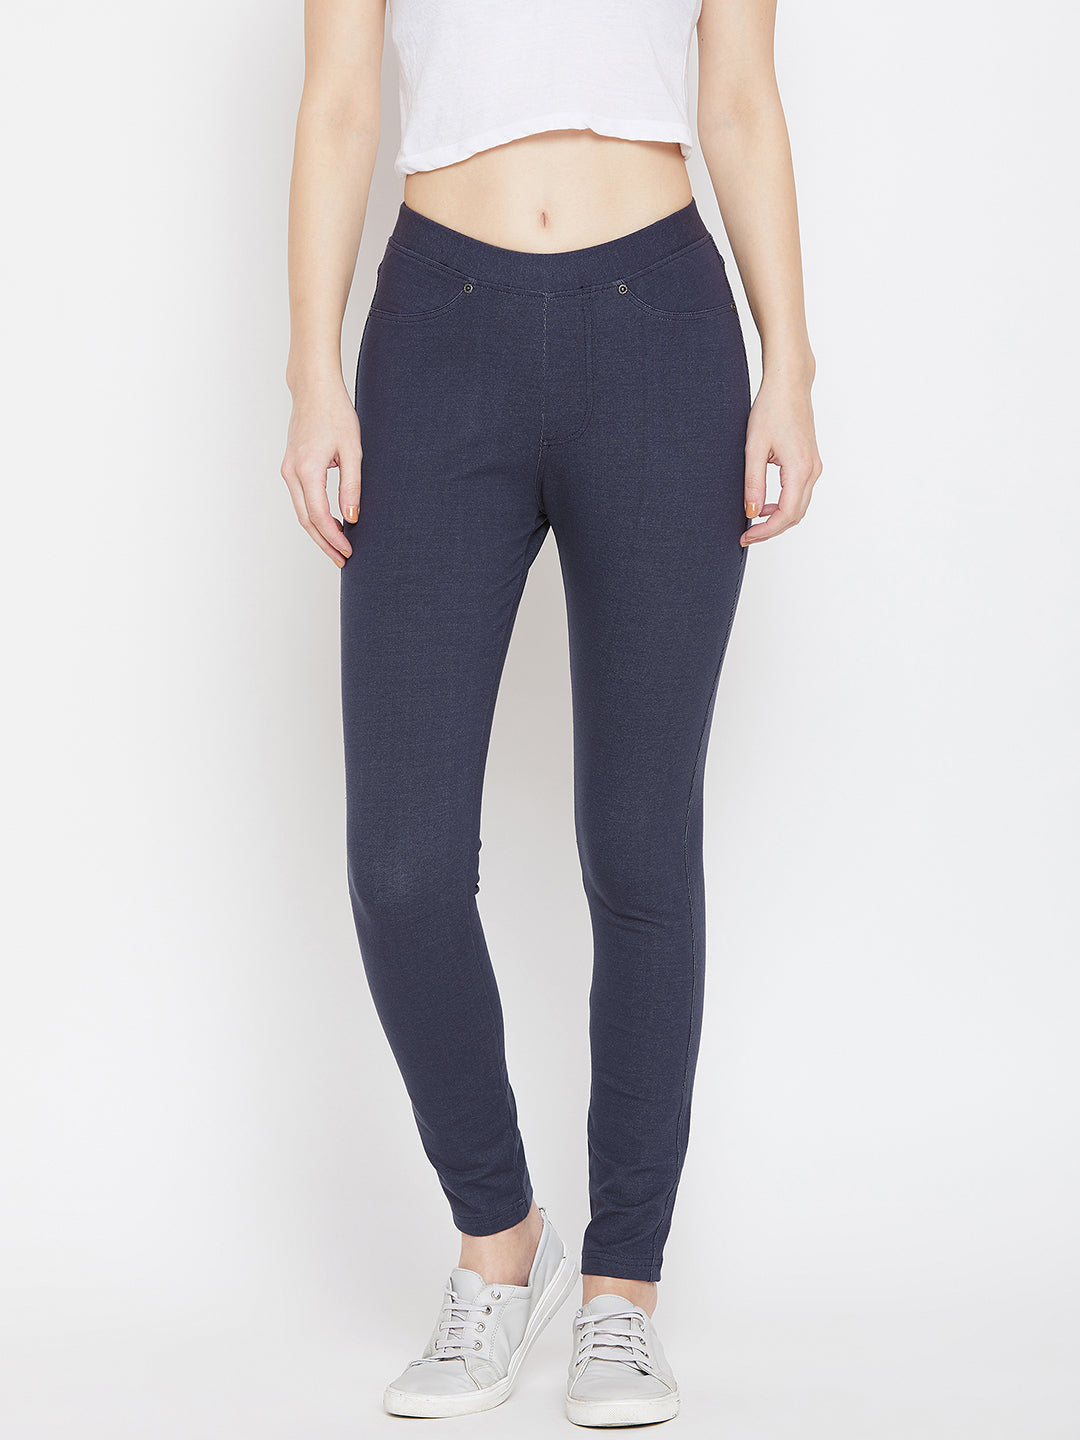 Women Navy Blue Casual Tights